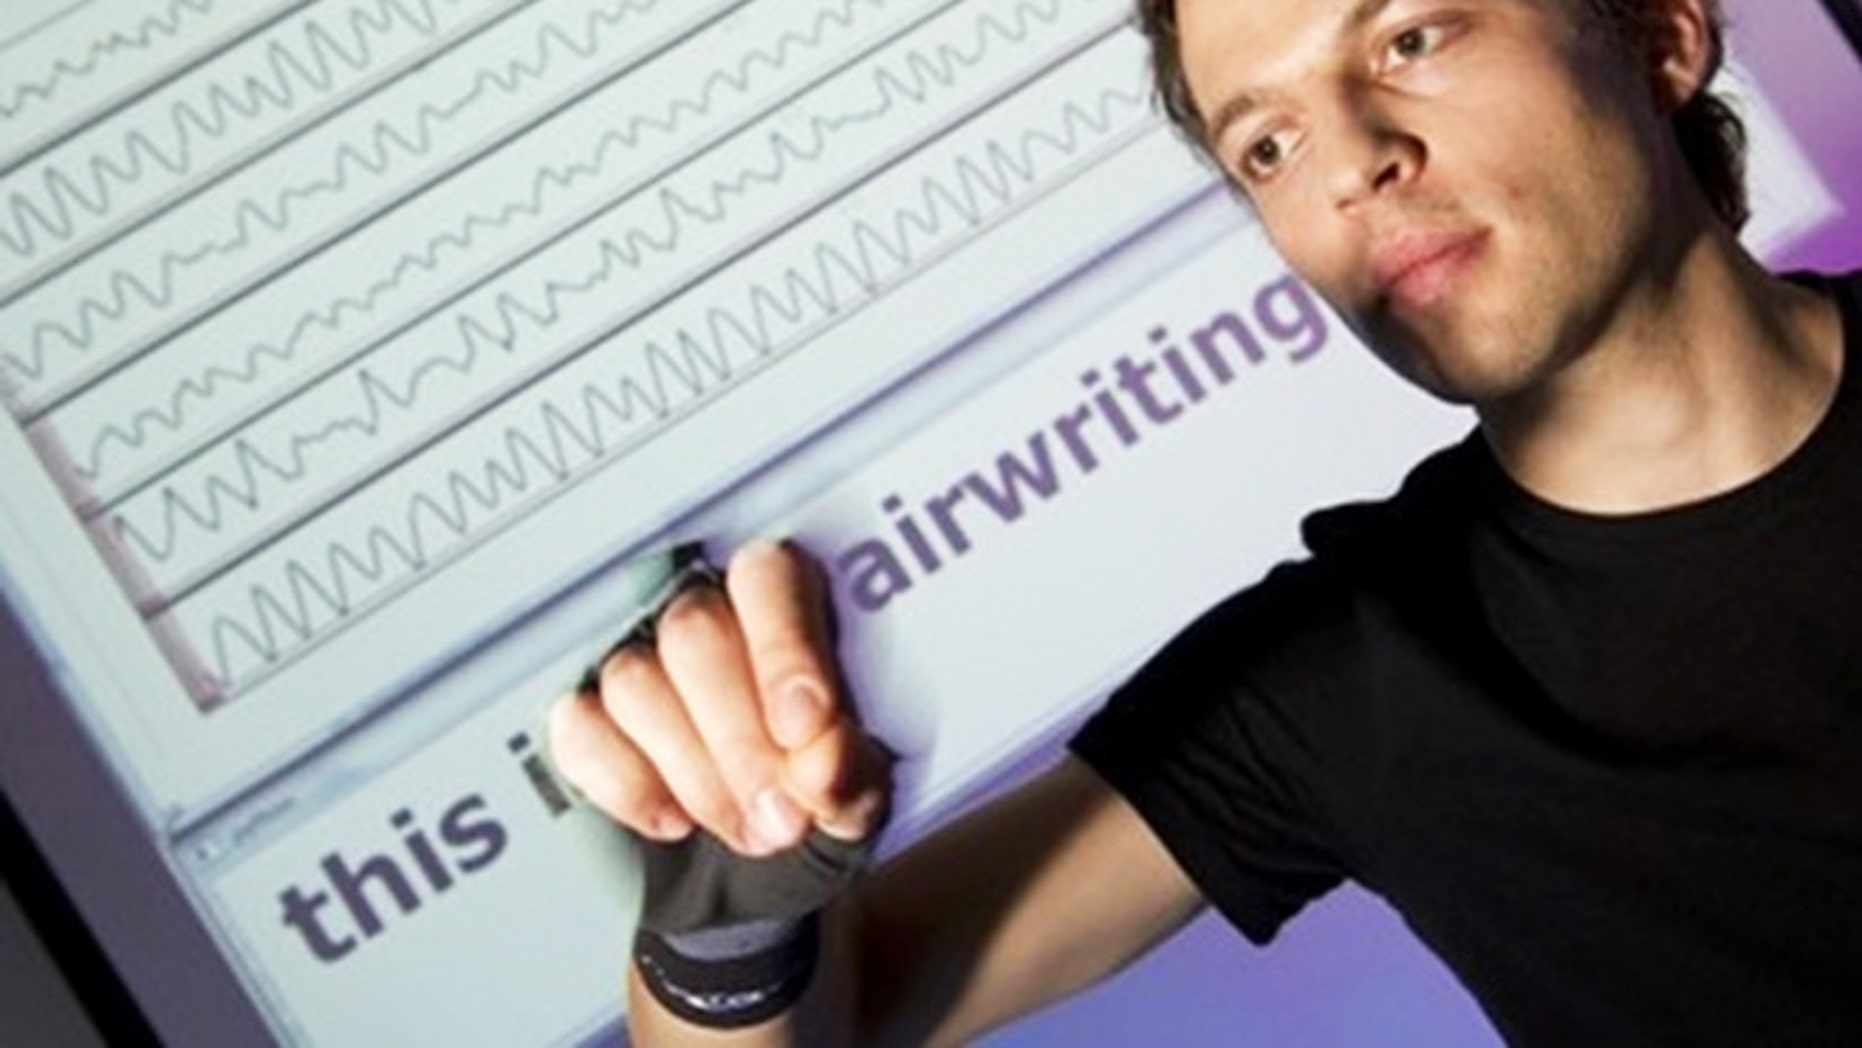 Airwriting: Based on motion signals, a computer recognizes letters written into thin air.